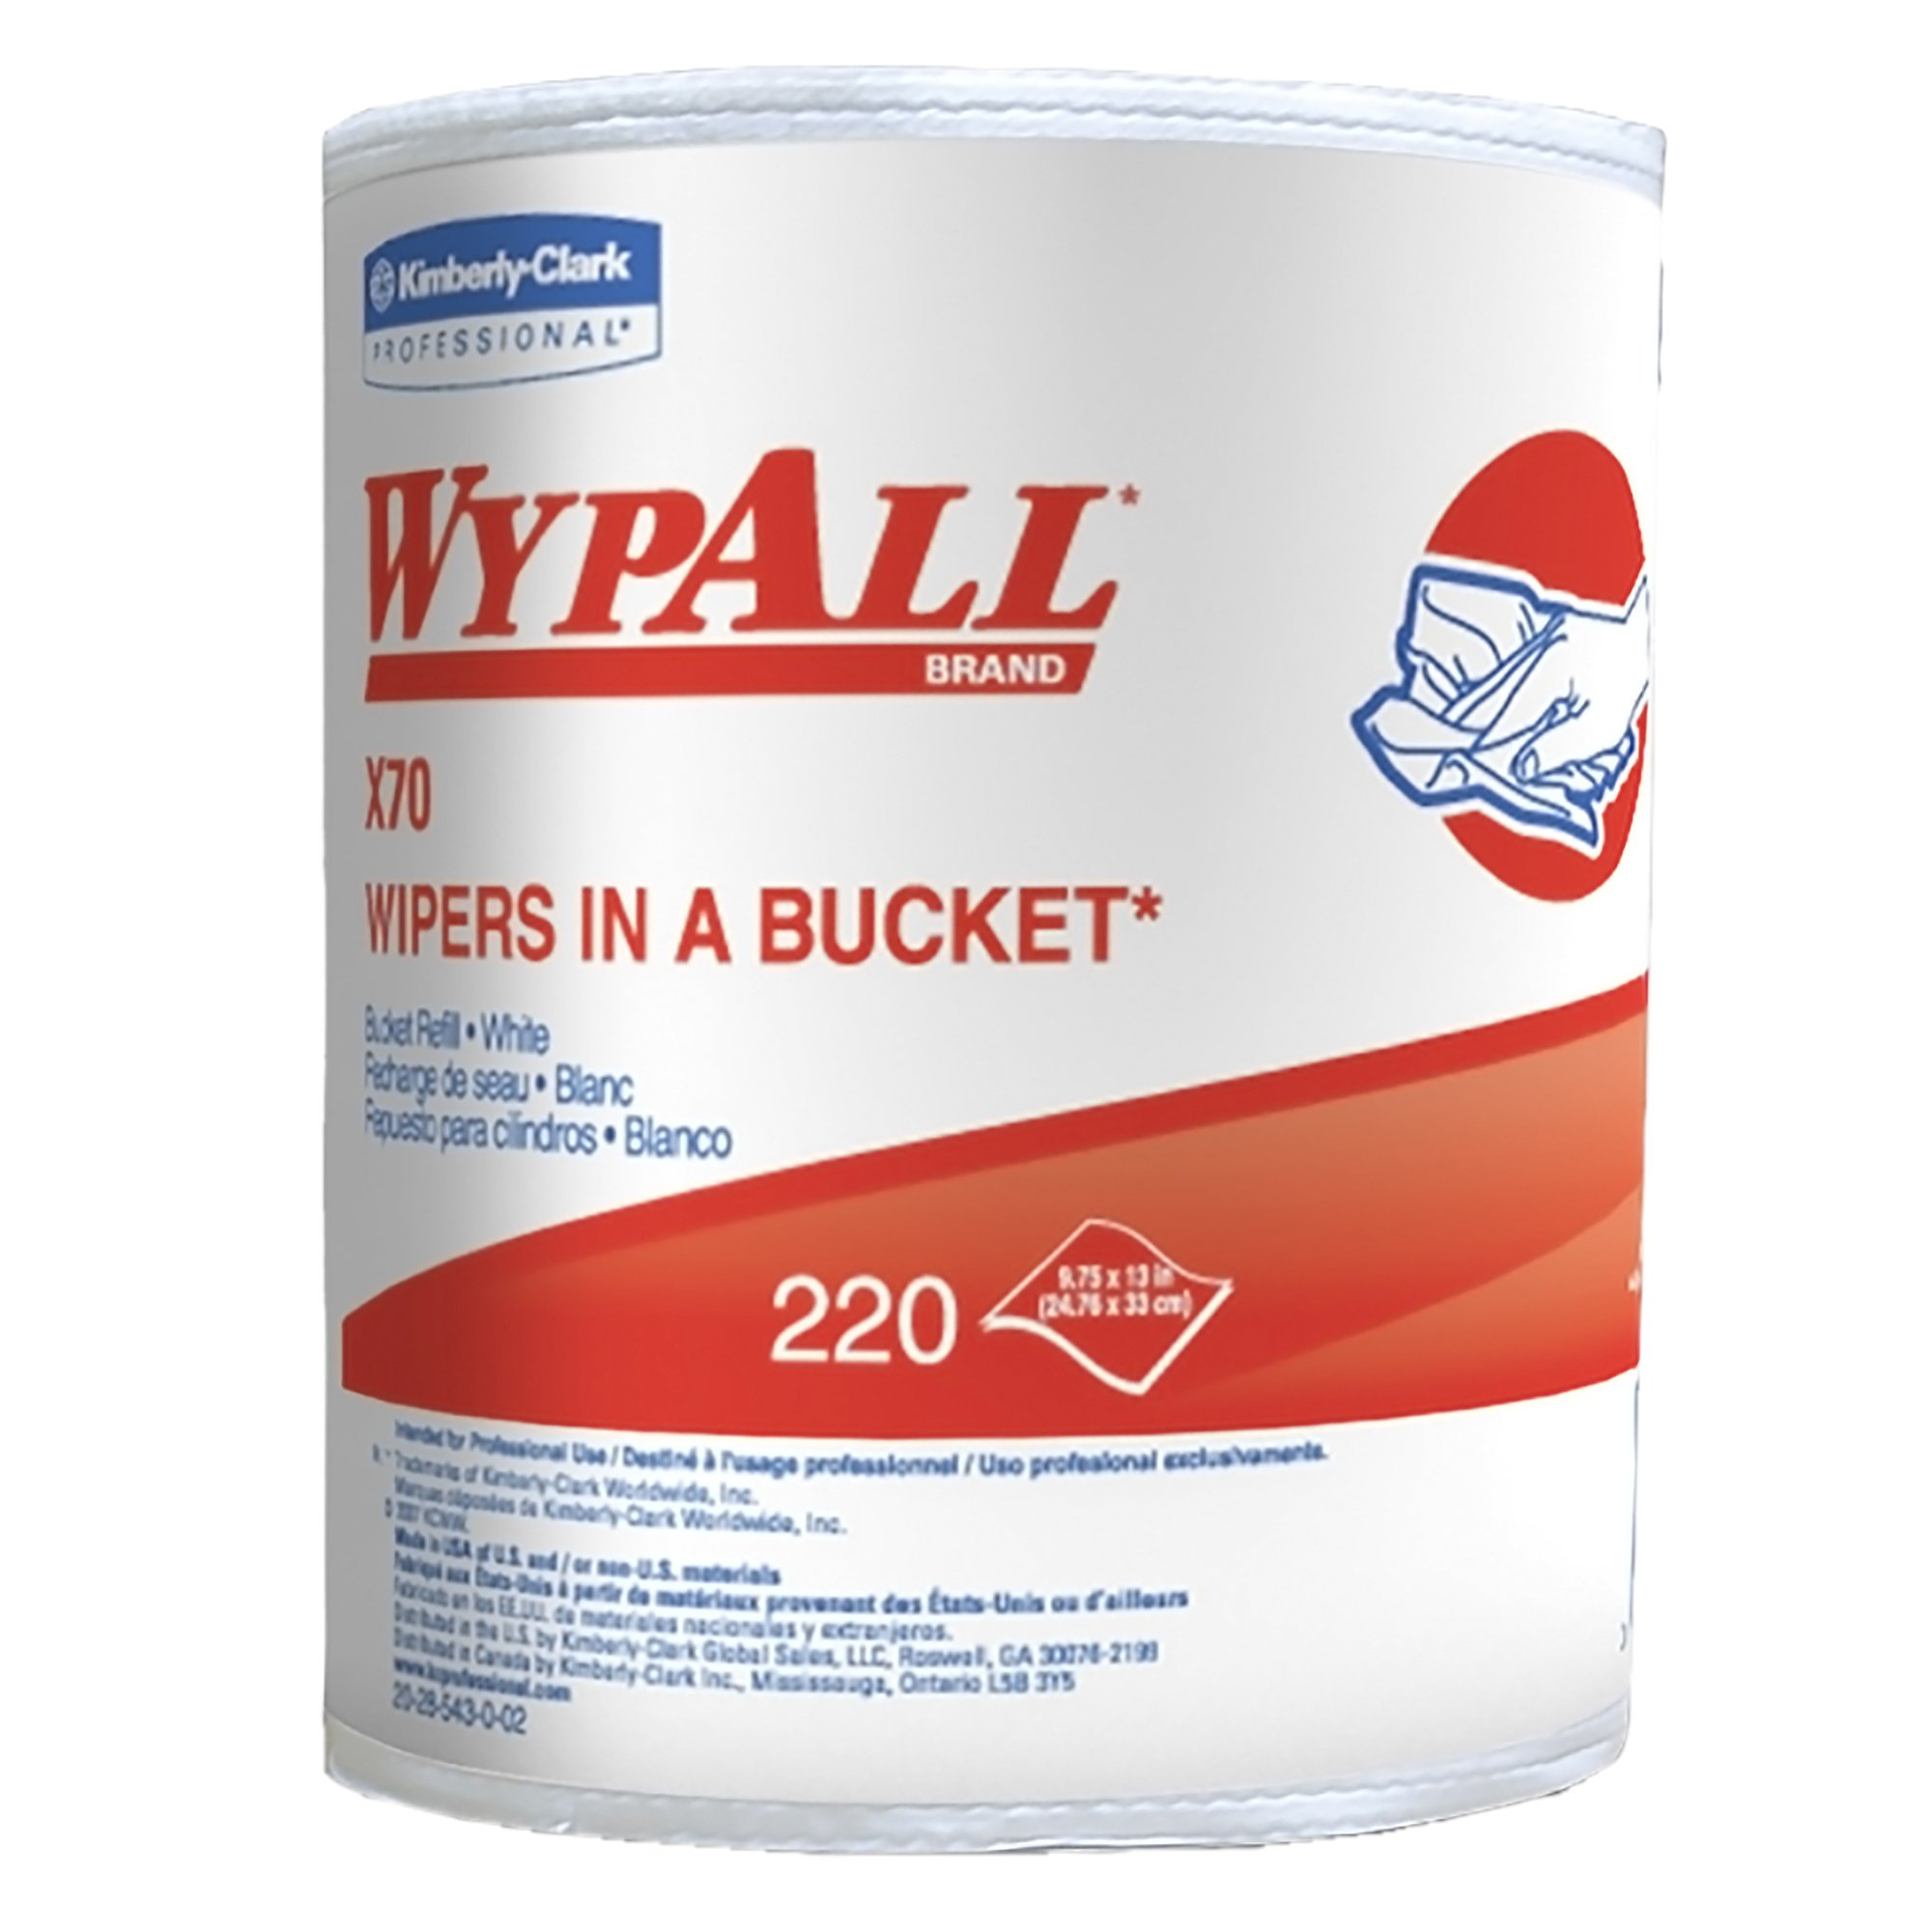 WypAll X70 Extended Use Reusable Cloths in a Bucket Refill (83571), Long Lasting Performance, White, 1 Bucket, 220 Cloths/Roll, 3 Rolls/Case